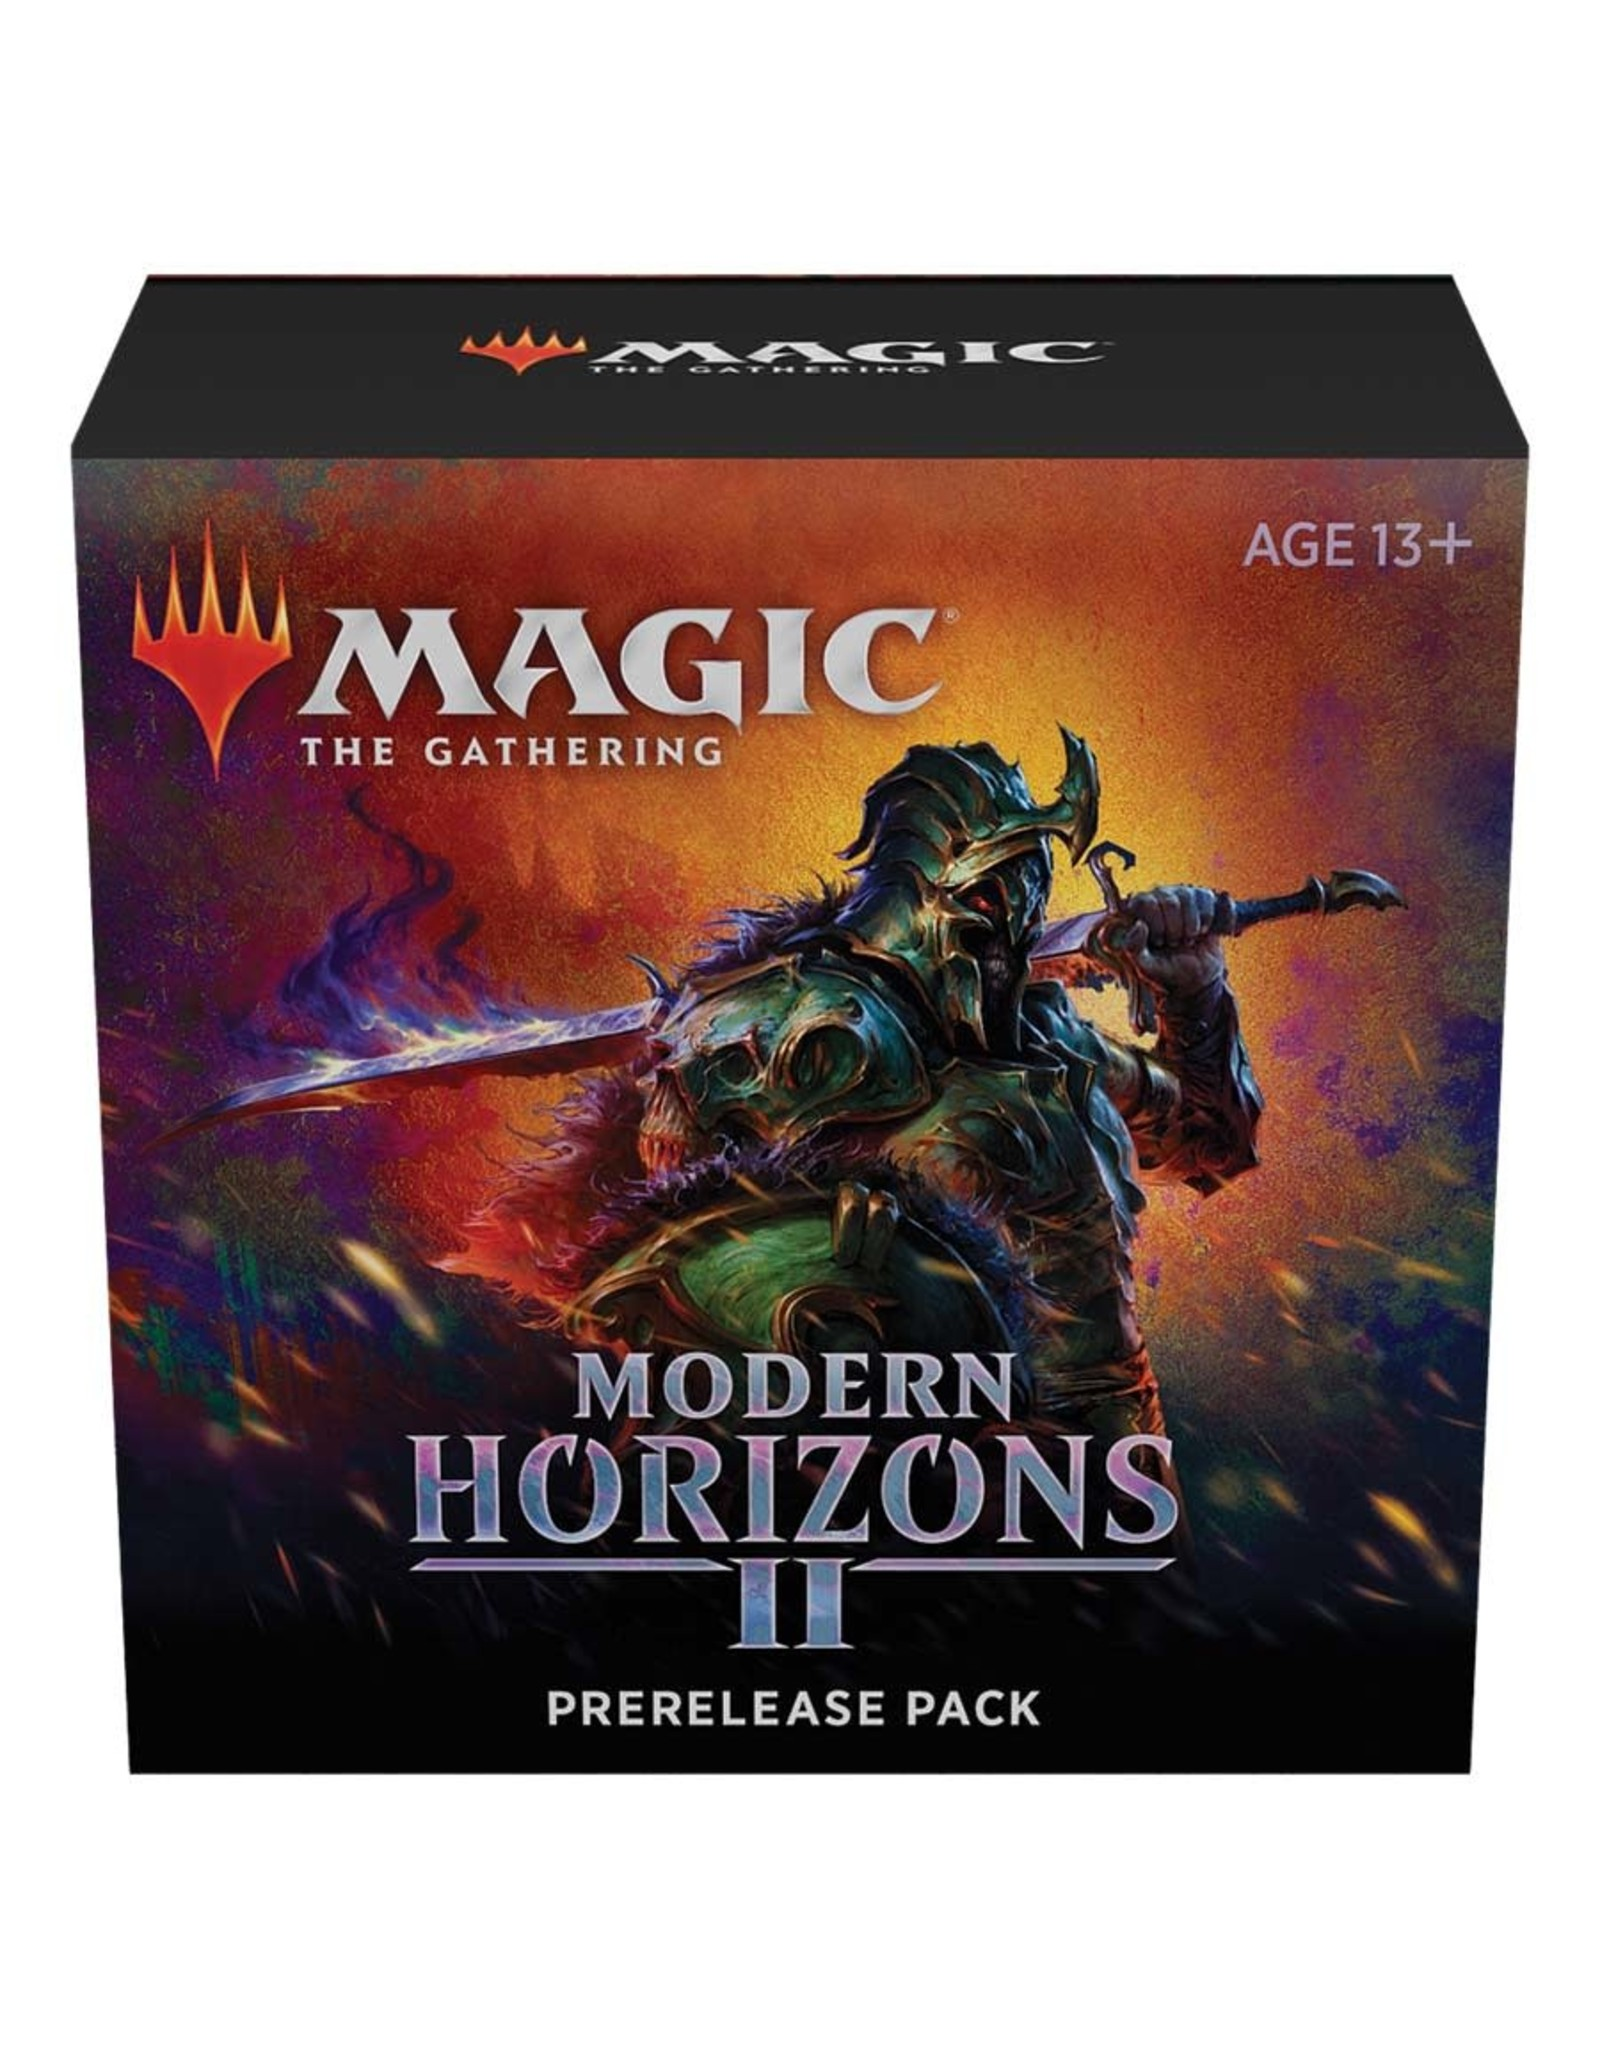 WIZARDS OF THE COAST MODERN HORIZONS II TAKE HOME PRE-RELEASE EVENT